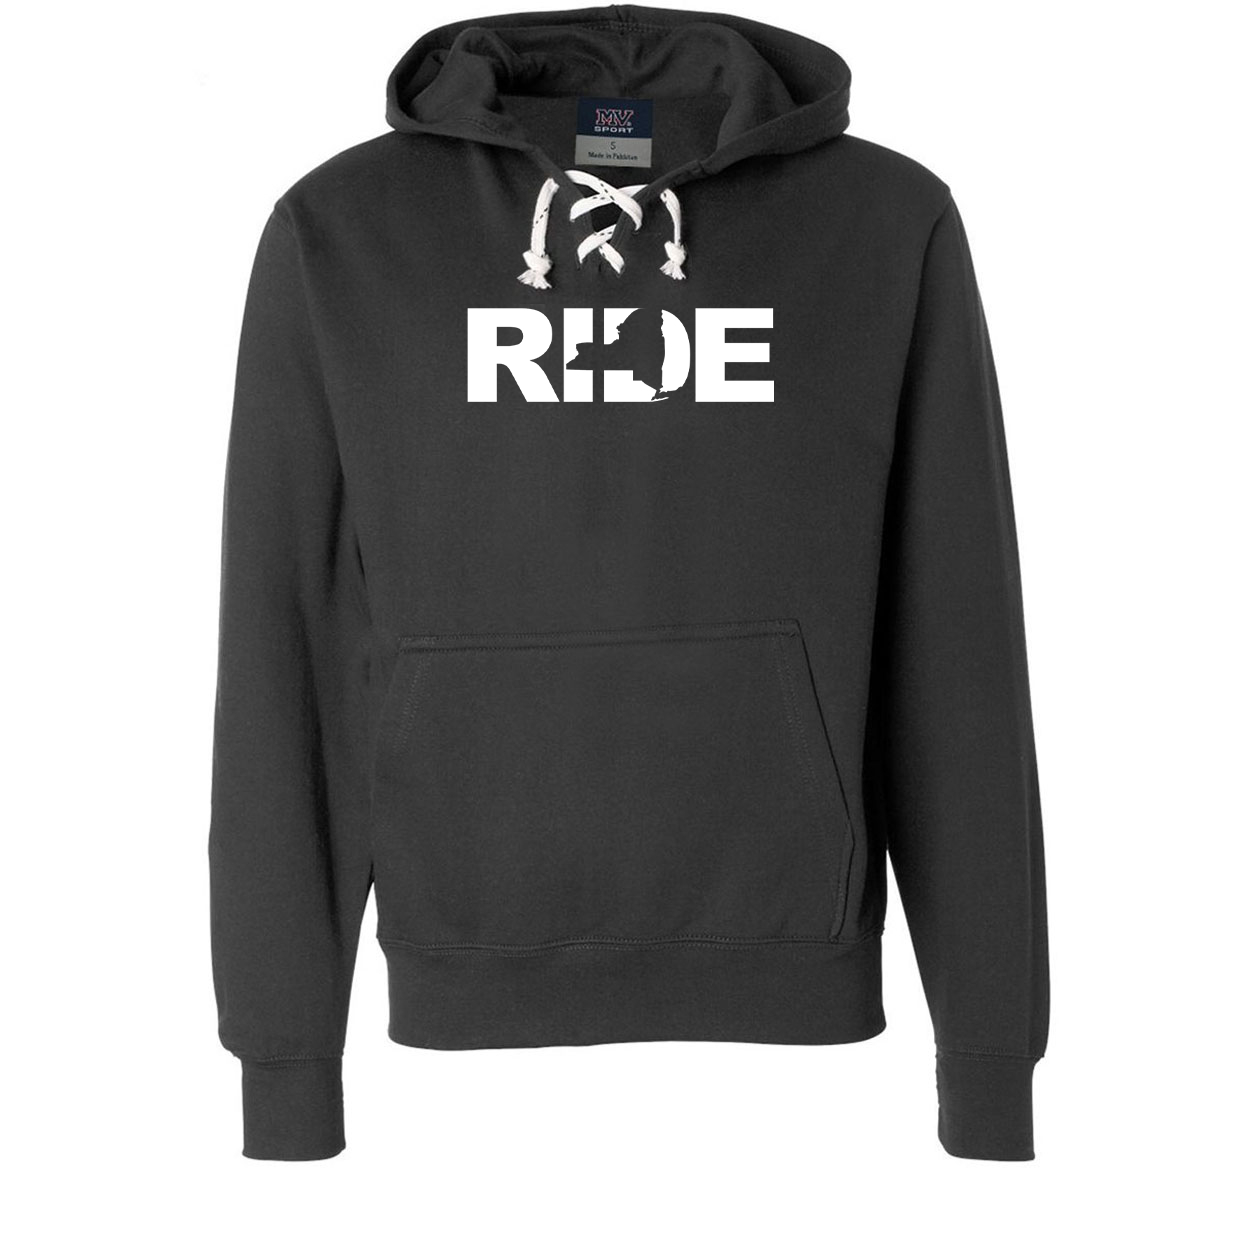 Ride New York Classic Unisex Premium Hockey Sweatshirt Black (White Logo)